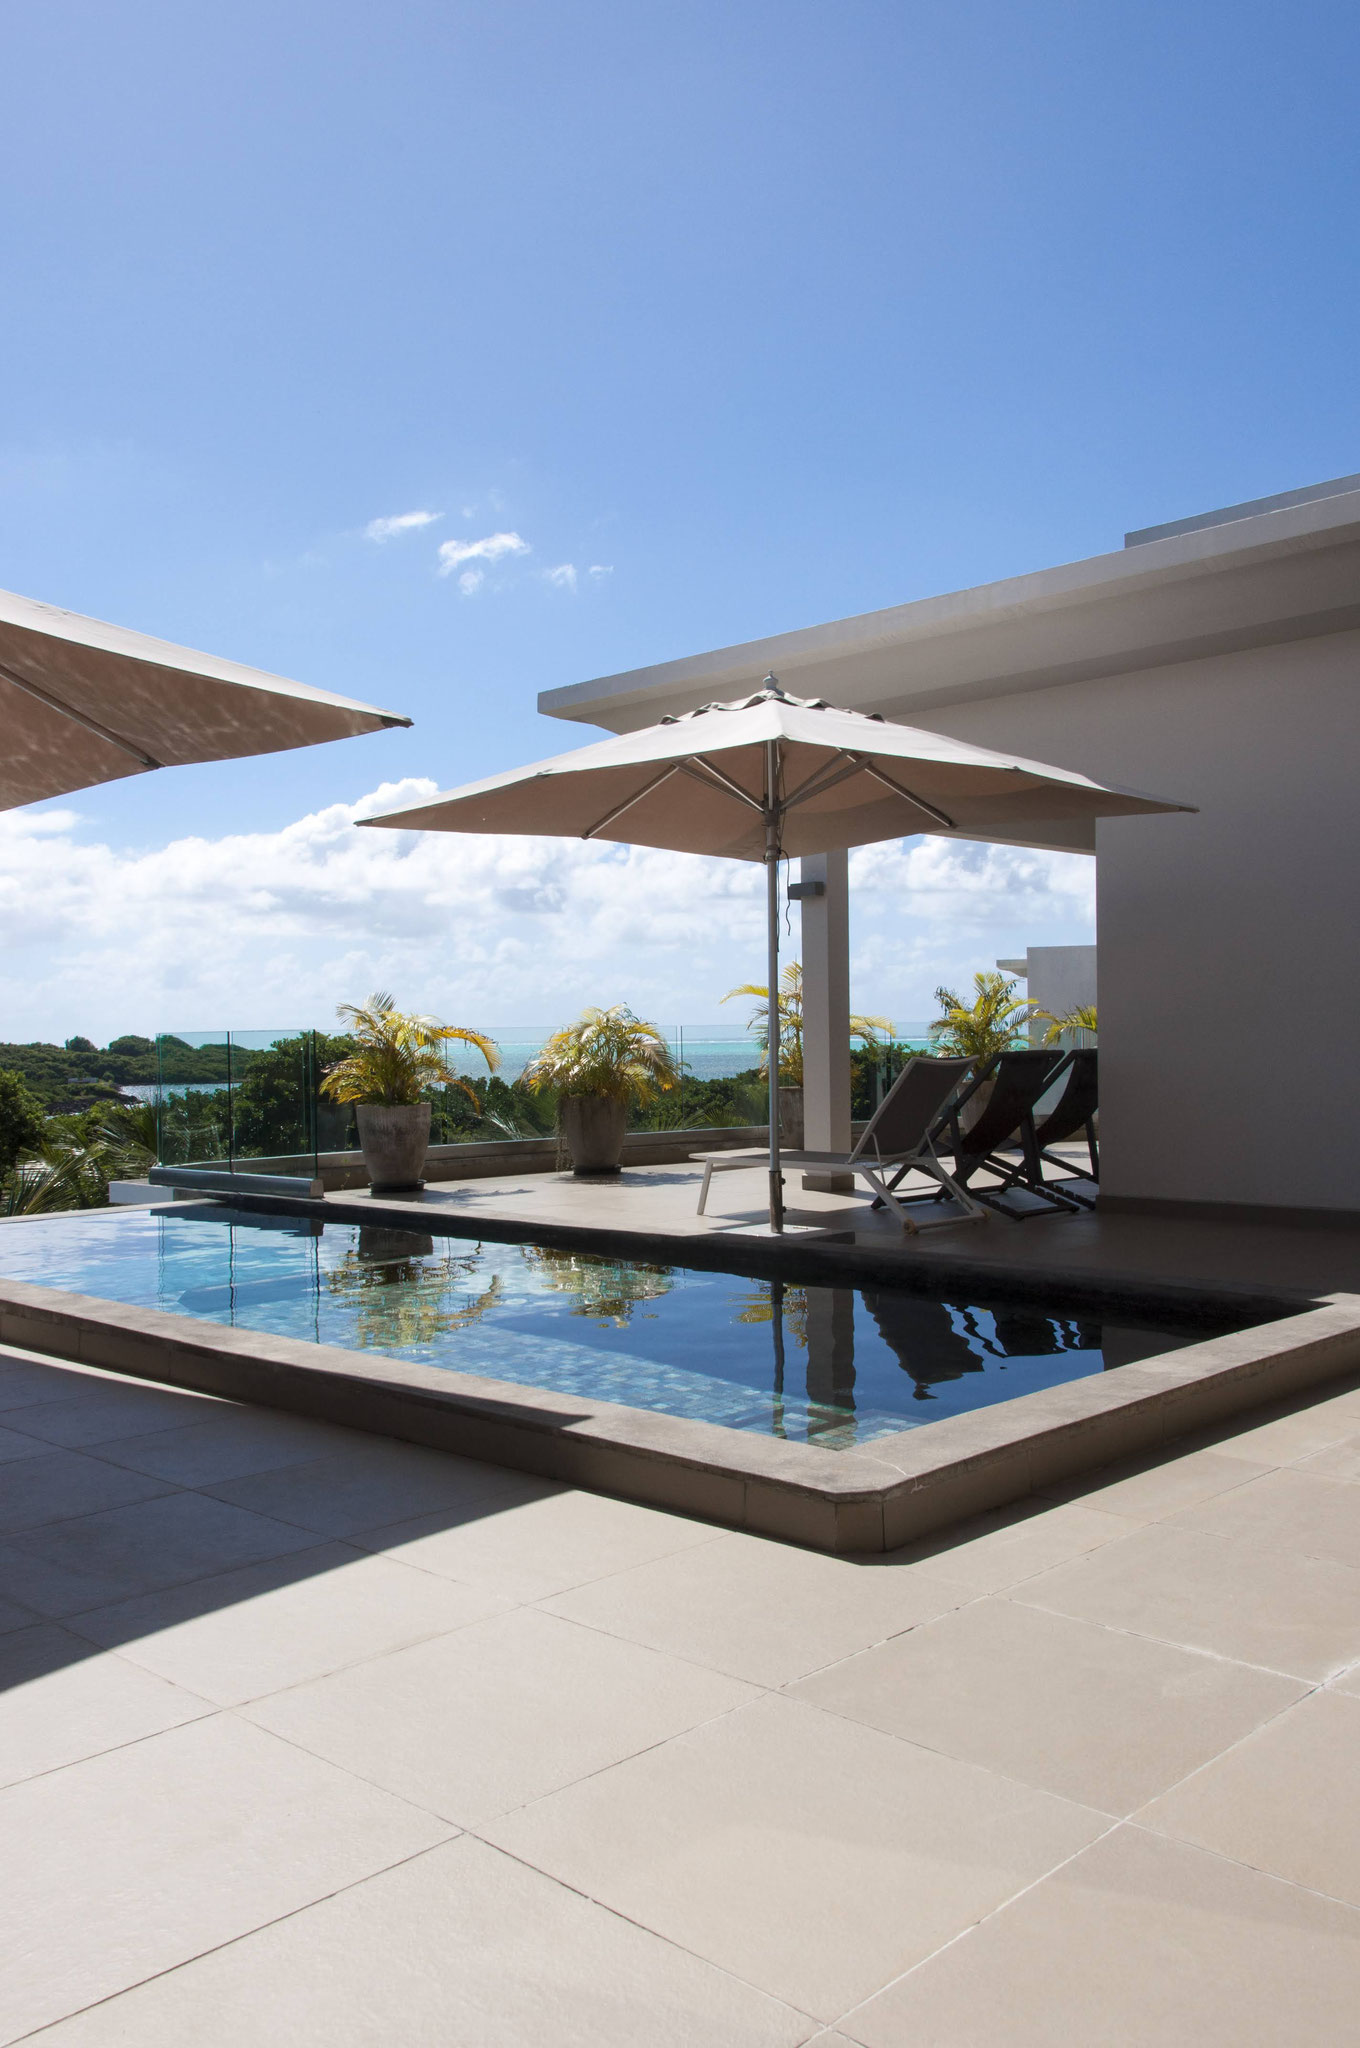 RESALE EXCEPTIONAL LUXURY PROPERTY SEA VIEW IN THE WORLD - PENTHOUSE IRS AZURI IN MAURITIUS ISLAND By JINVESTY